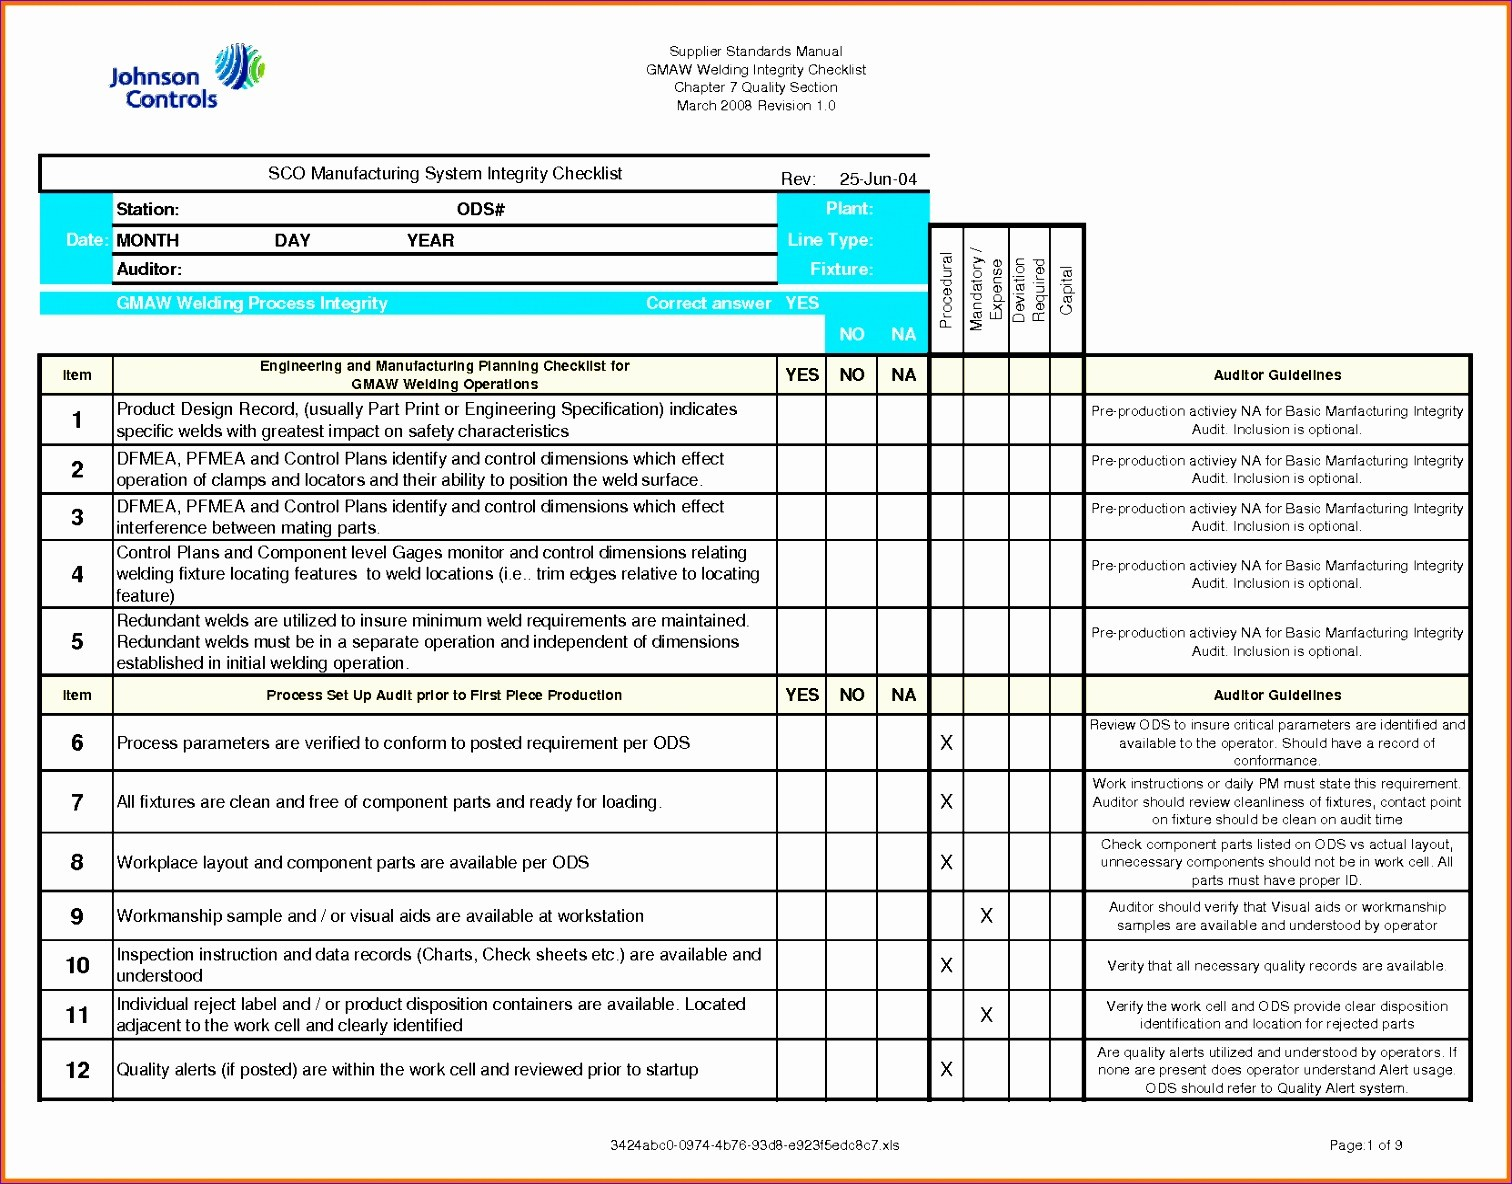 quality control checklist template excel  11 Quality Checklist Template Excel - ExcelTemplates ..